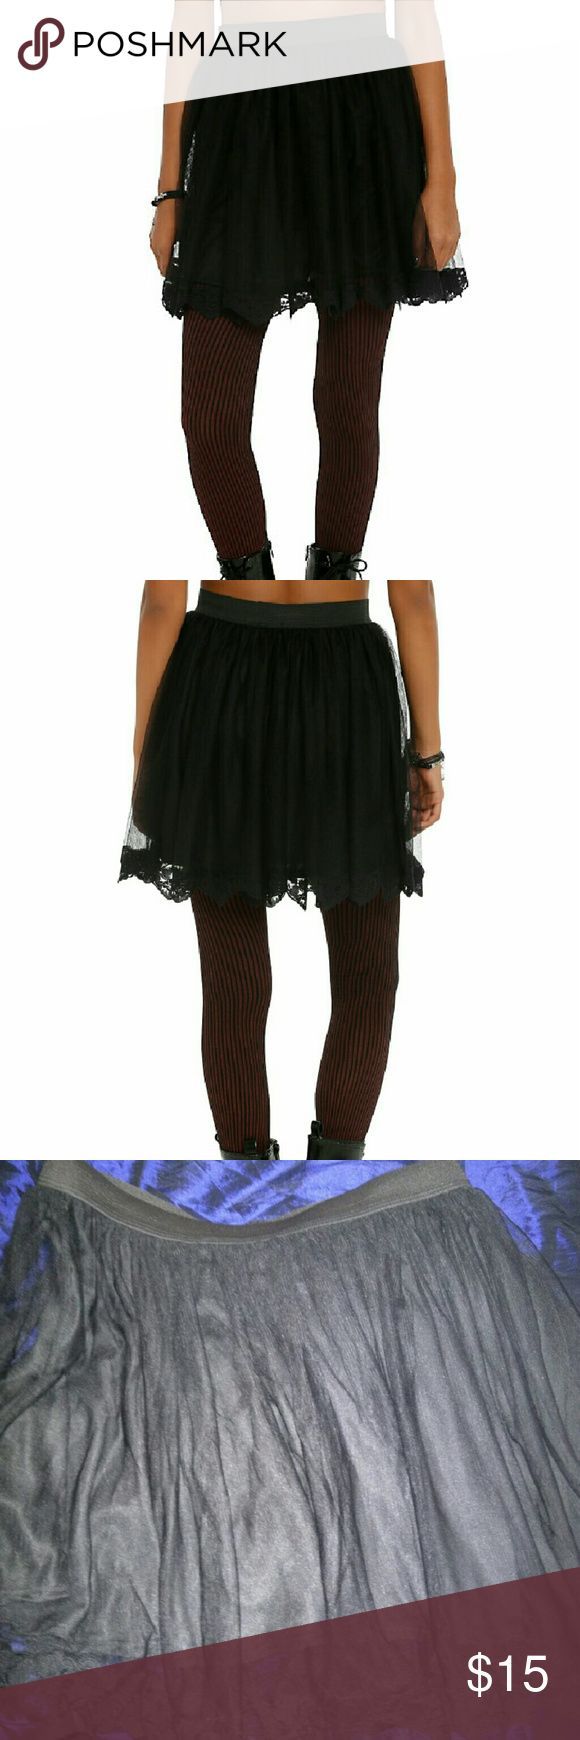 Black lace trim skirt Black lace trim skirt by After Midnight.  Never worn because it is just too big for me unfortunately. Hot Topic Skirts